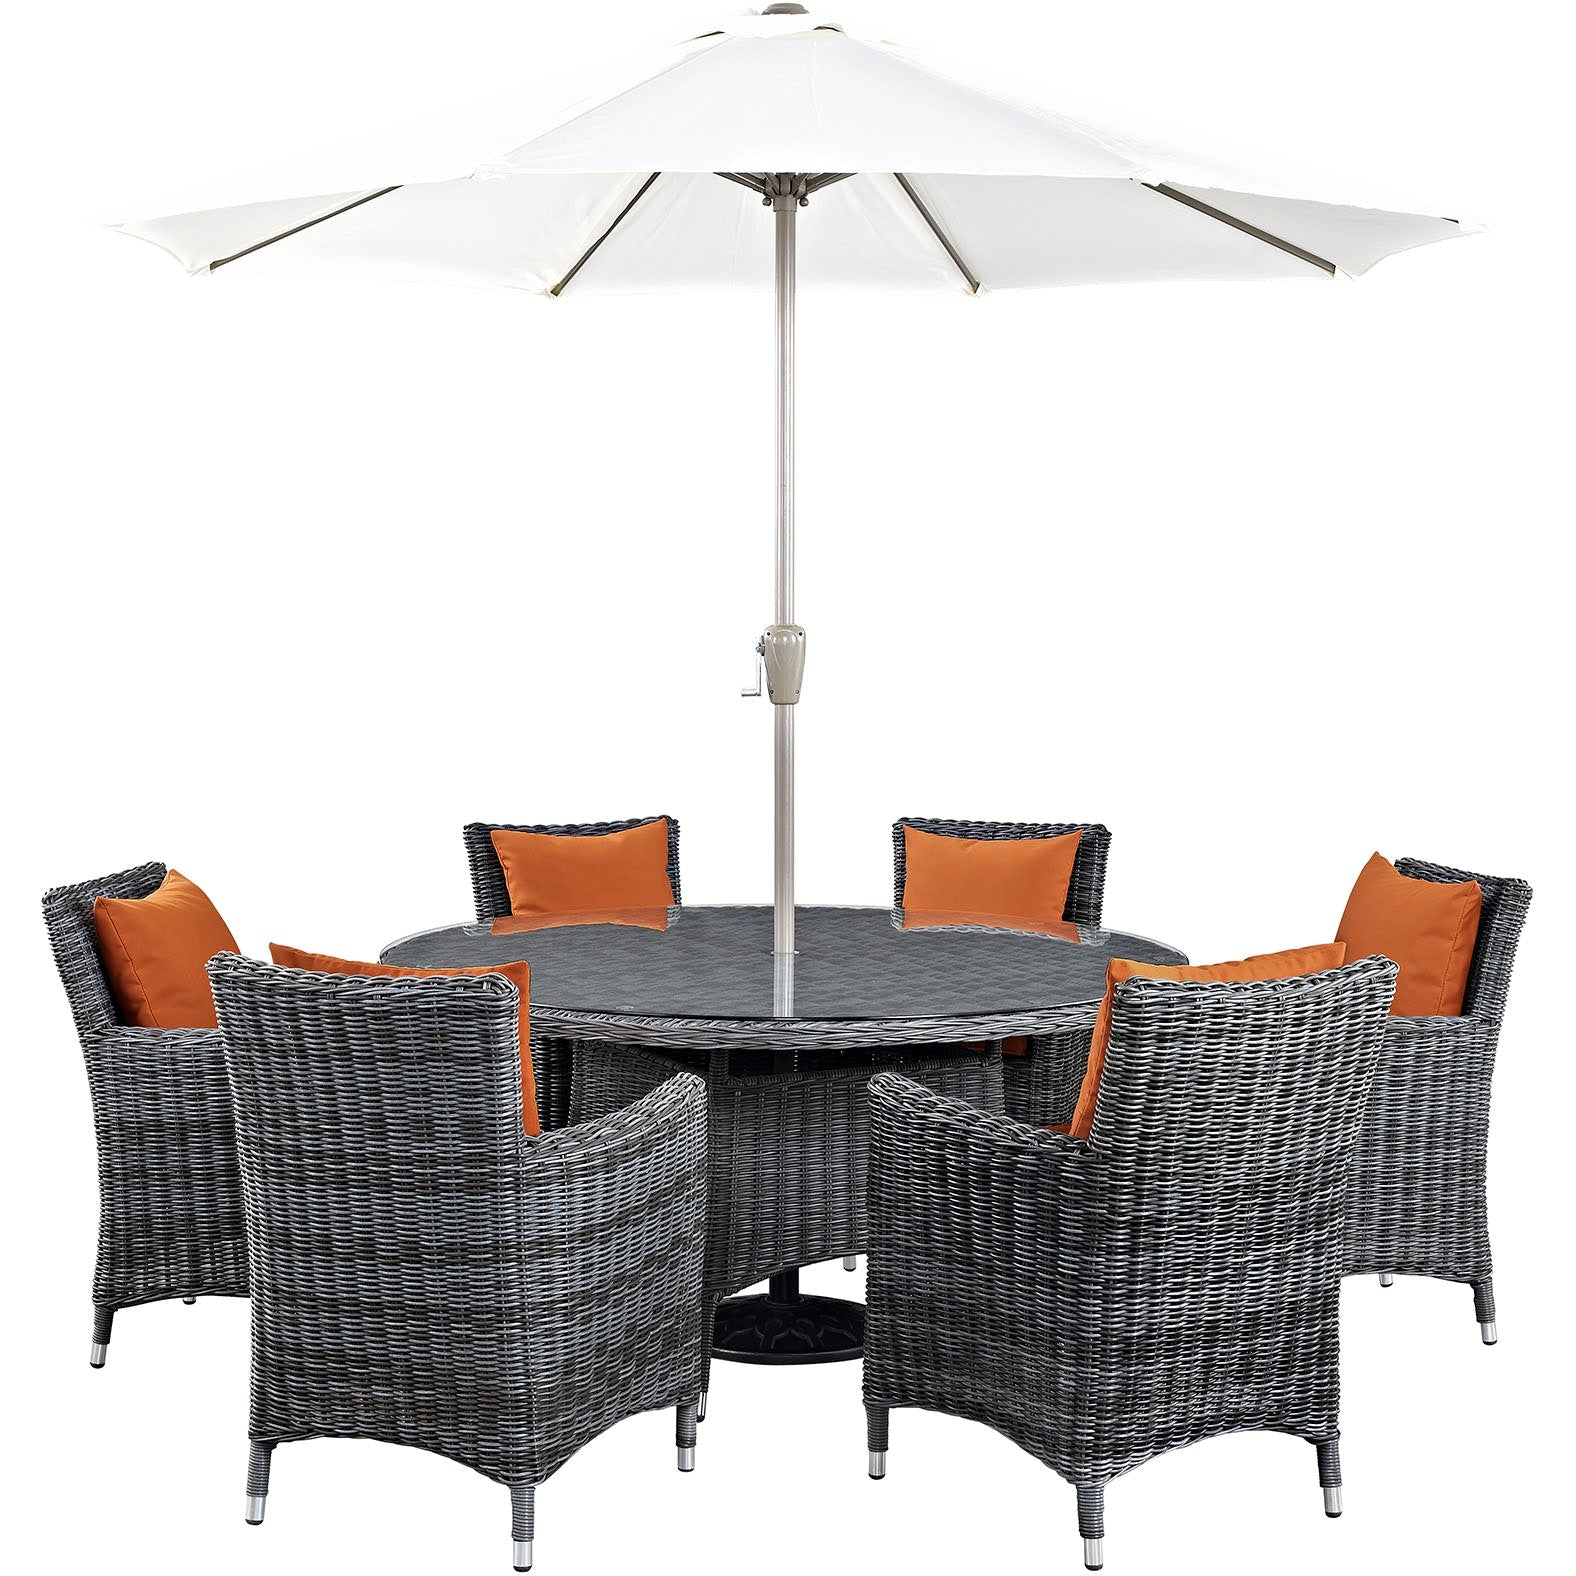 Summon 8 Piece Outdoor Patio Sunbrella® Dining Set - Canvas Tuscan